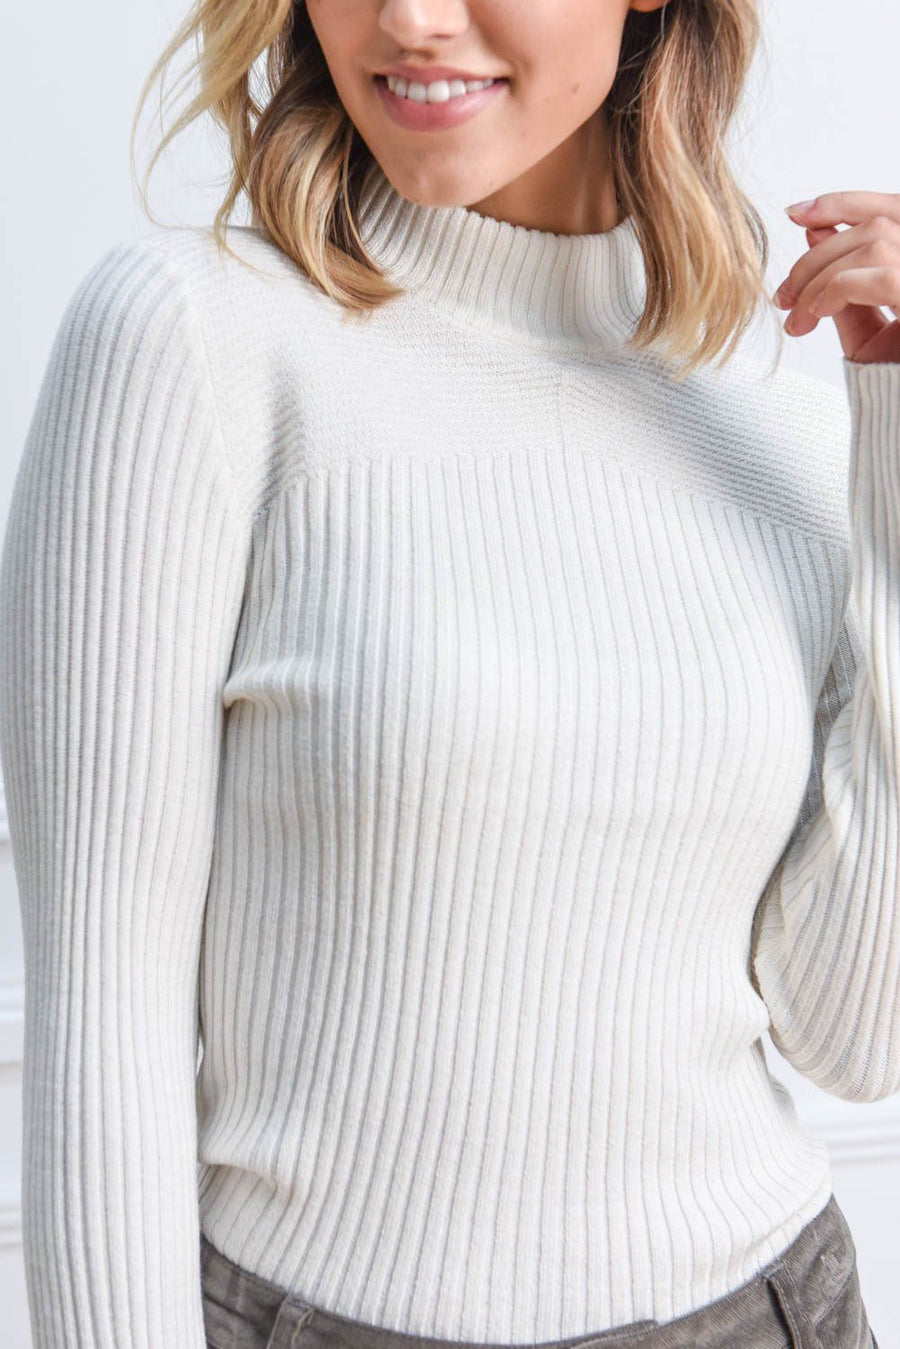 Sierra Turtleneck Knit | Ivory Top Gray Label